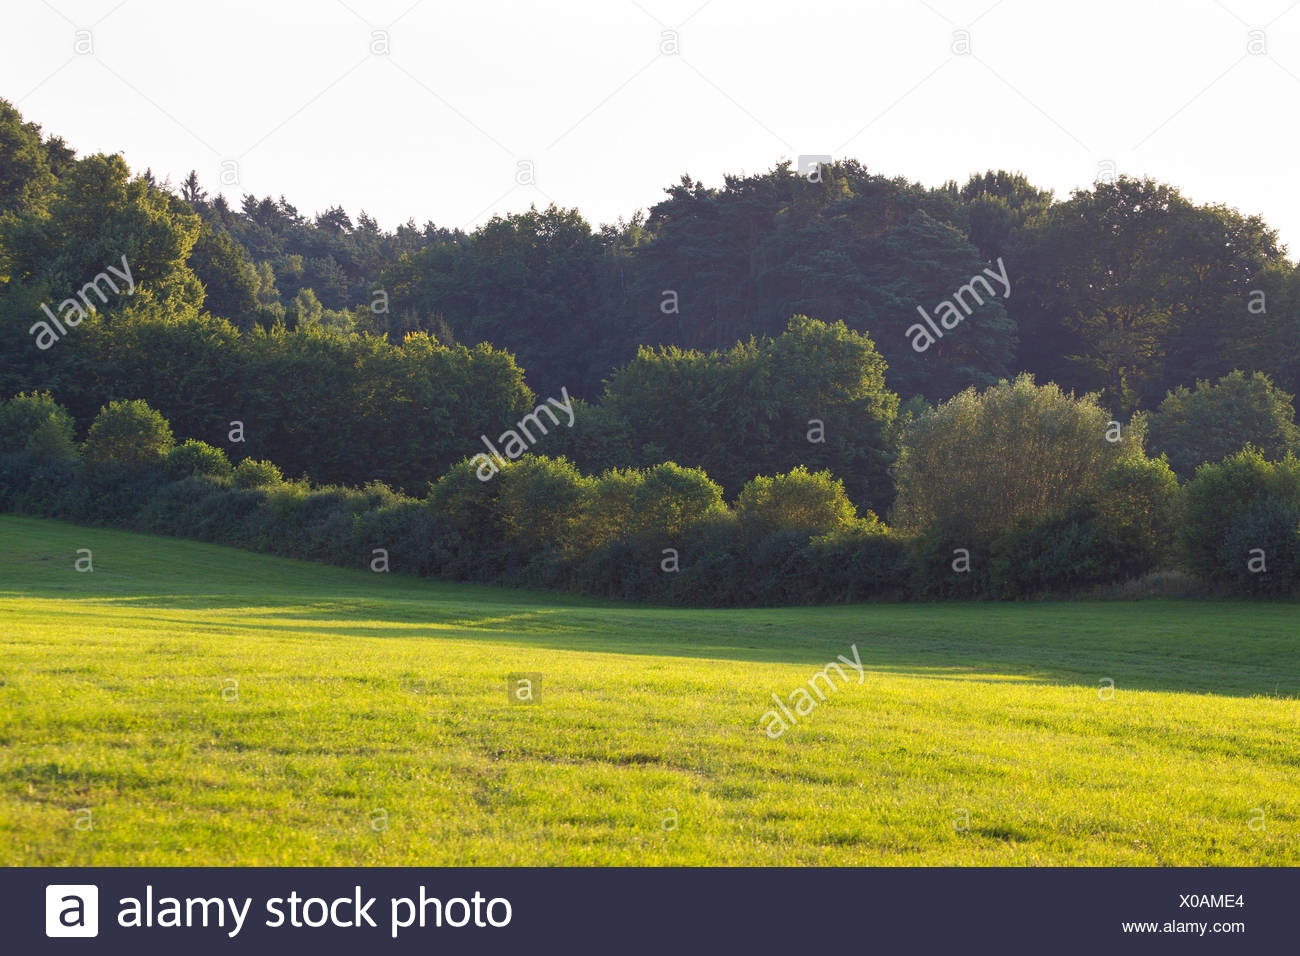 pastures with hedge banks, Germany, Schleswig-Holstein - Stock Image